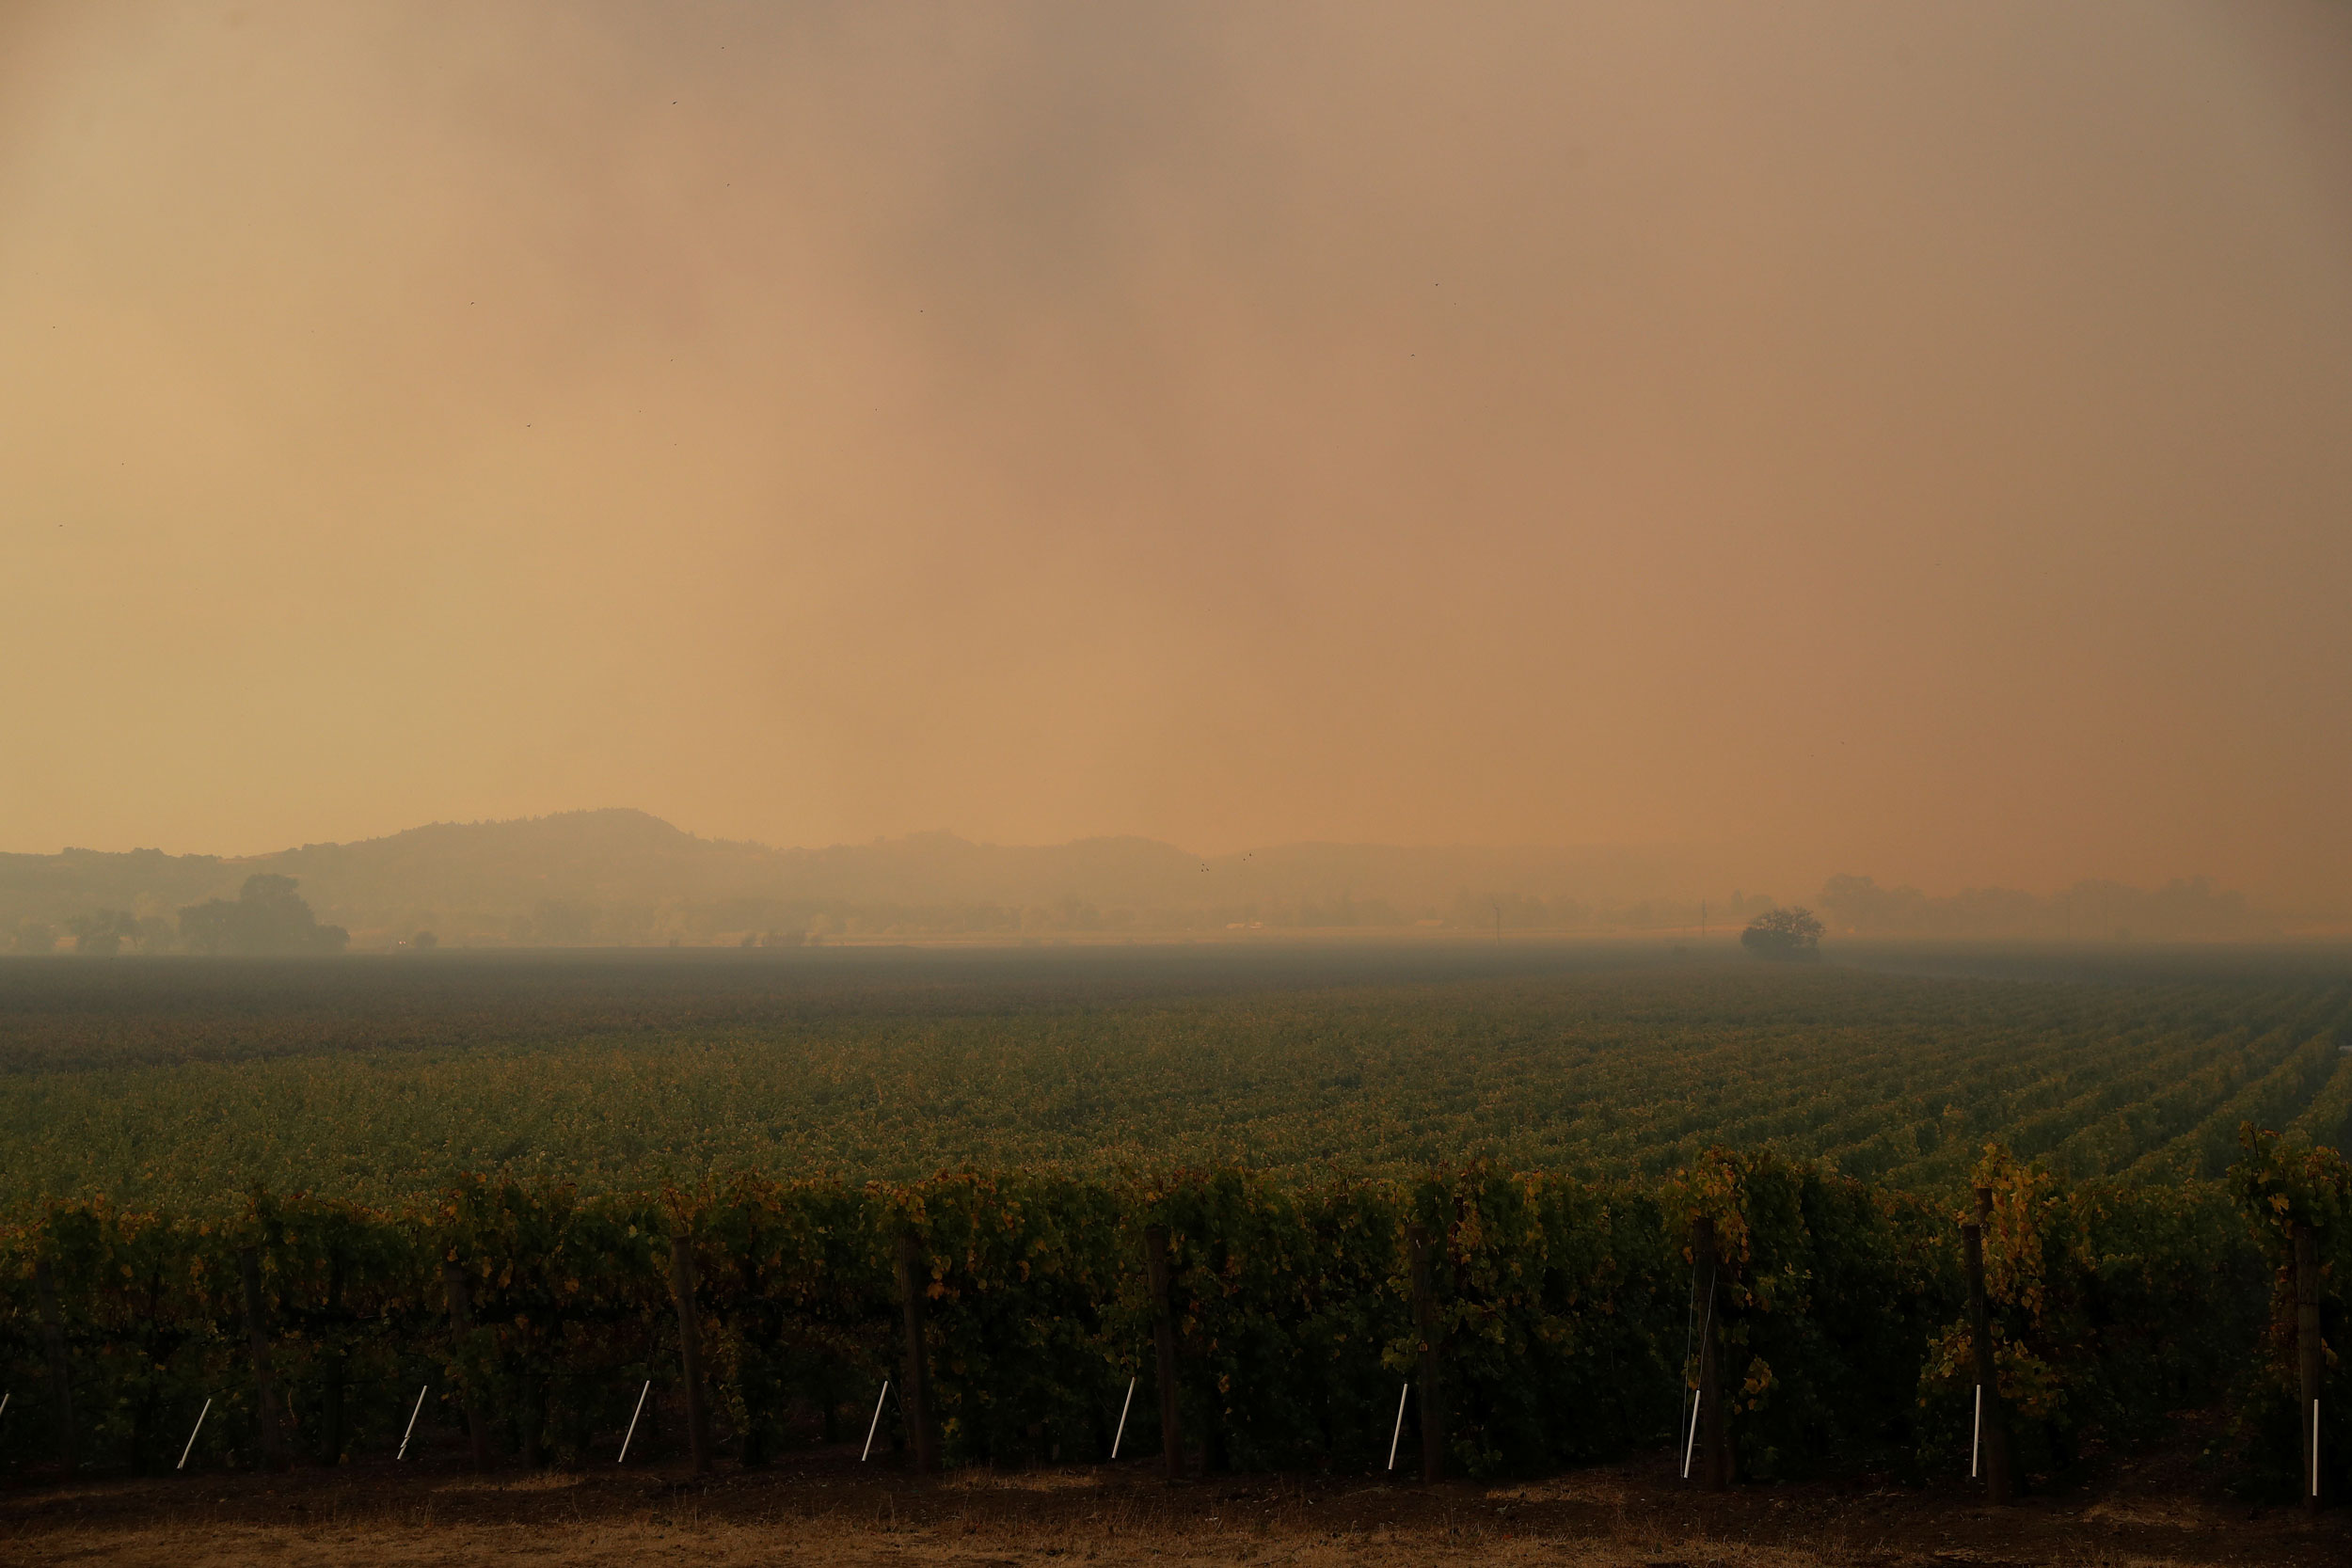 A vineyard is shown with mountains off in the distance with smoke clouding the entire sky.